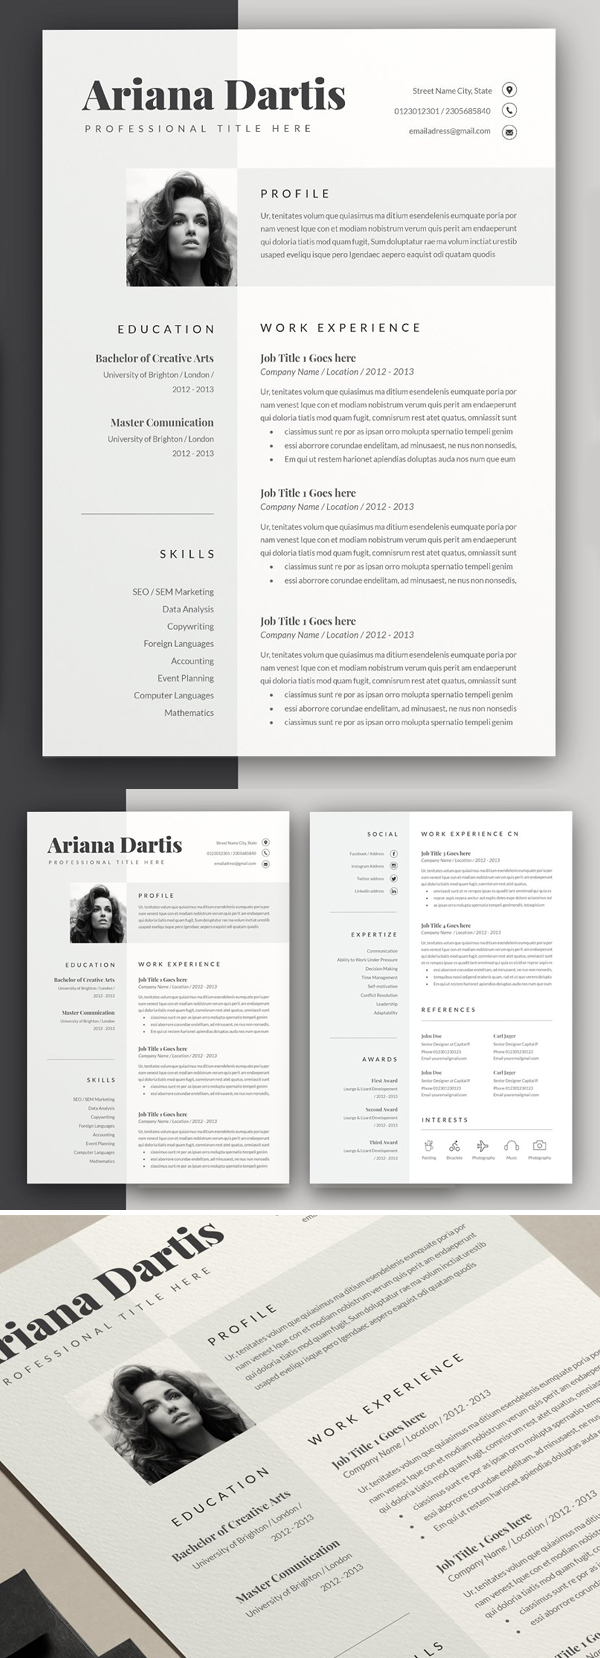 50 Best Resume Templates Of 2020 - 21